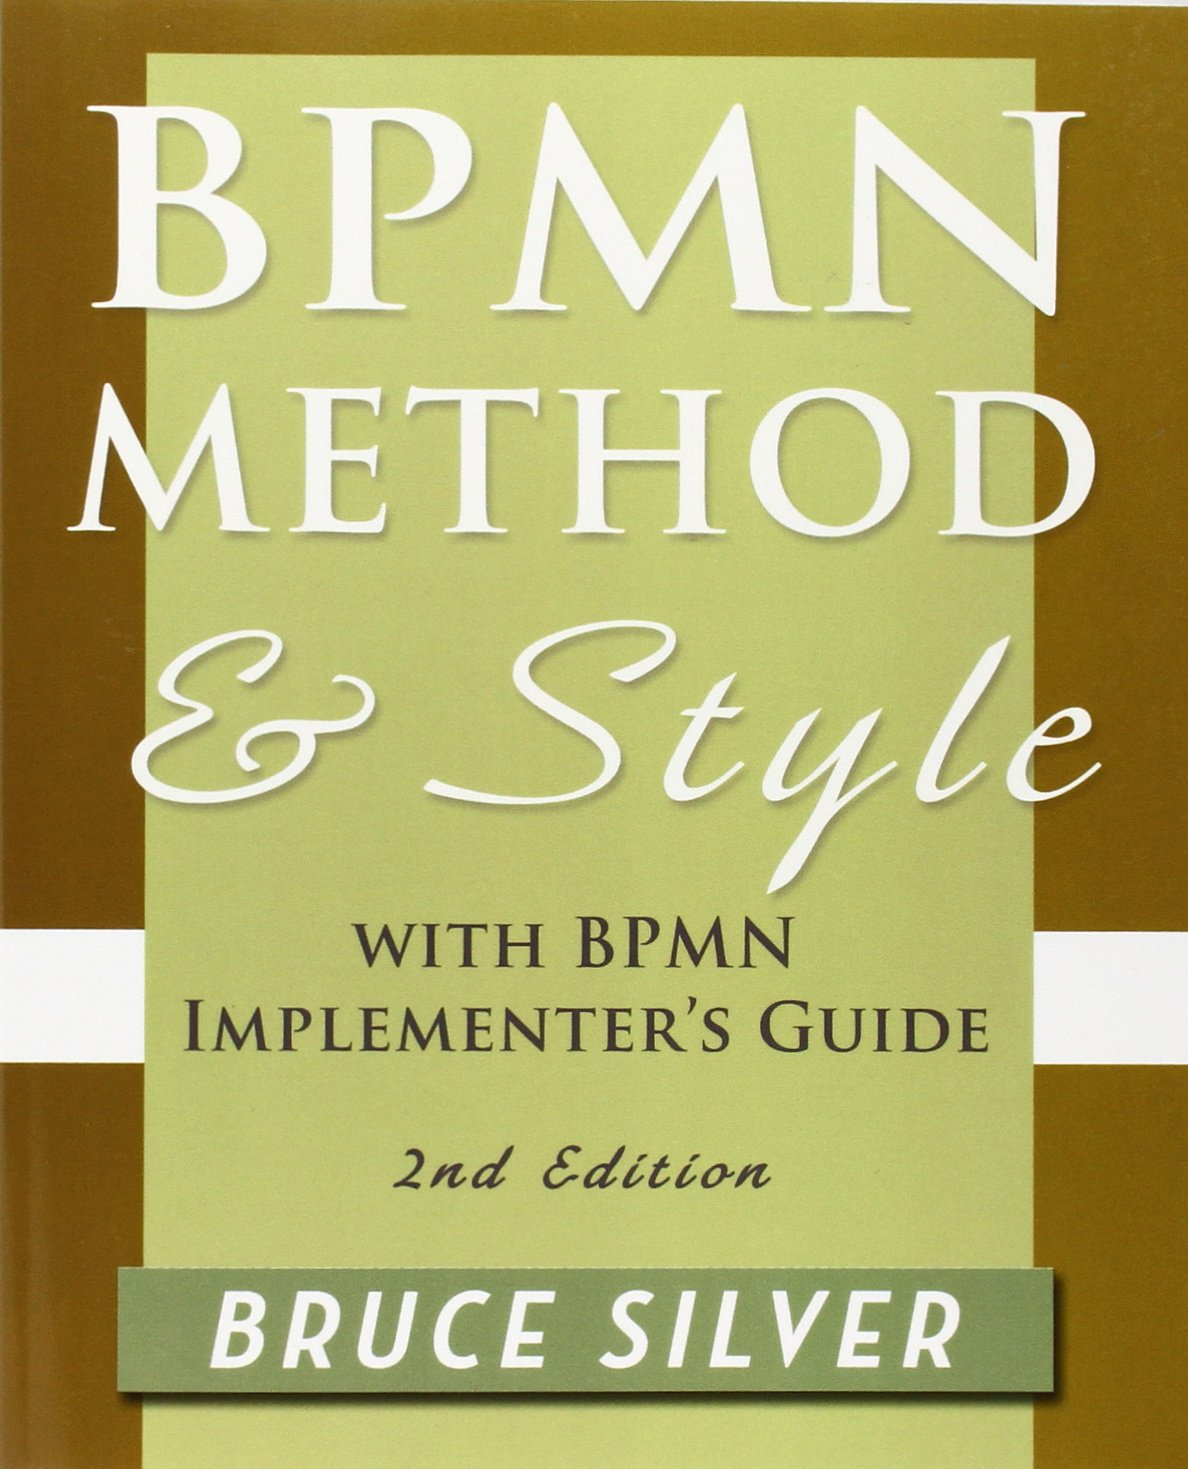 implementers guide a structured approach for business process modeling and implementation using bpmn 2 bruce silver 9780982368114 amazoncom books - Bpmn Book